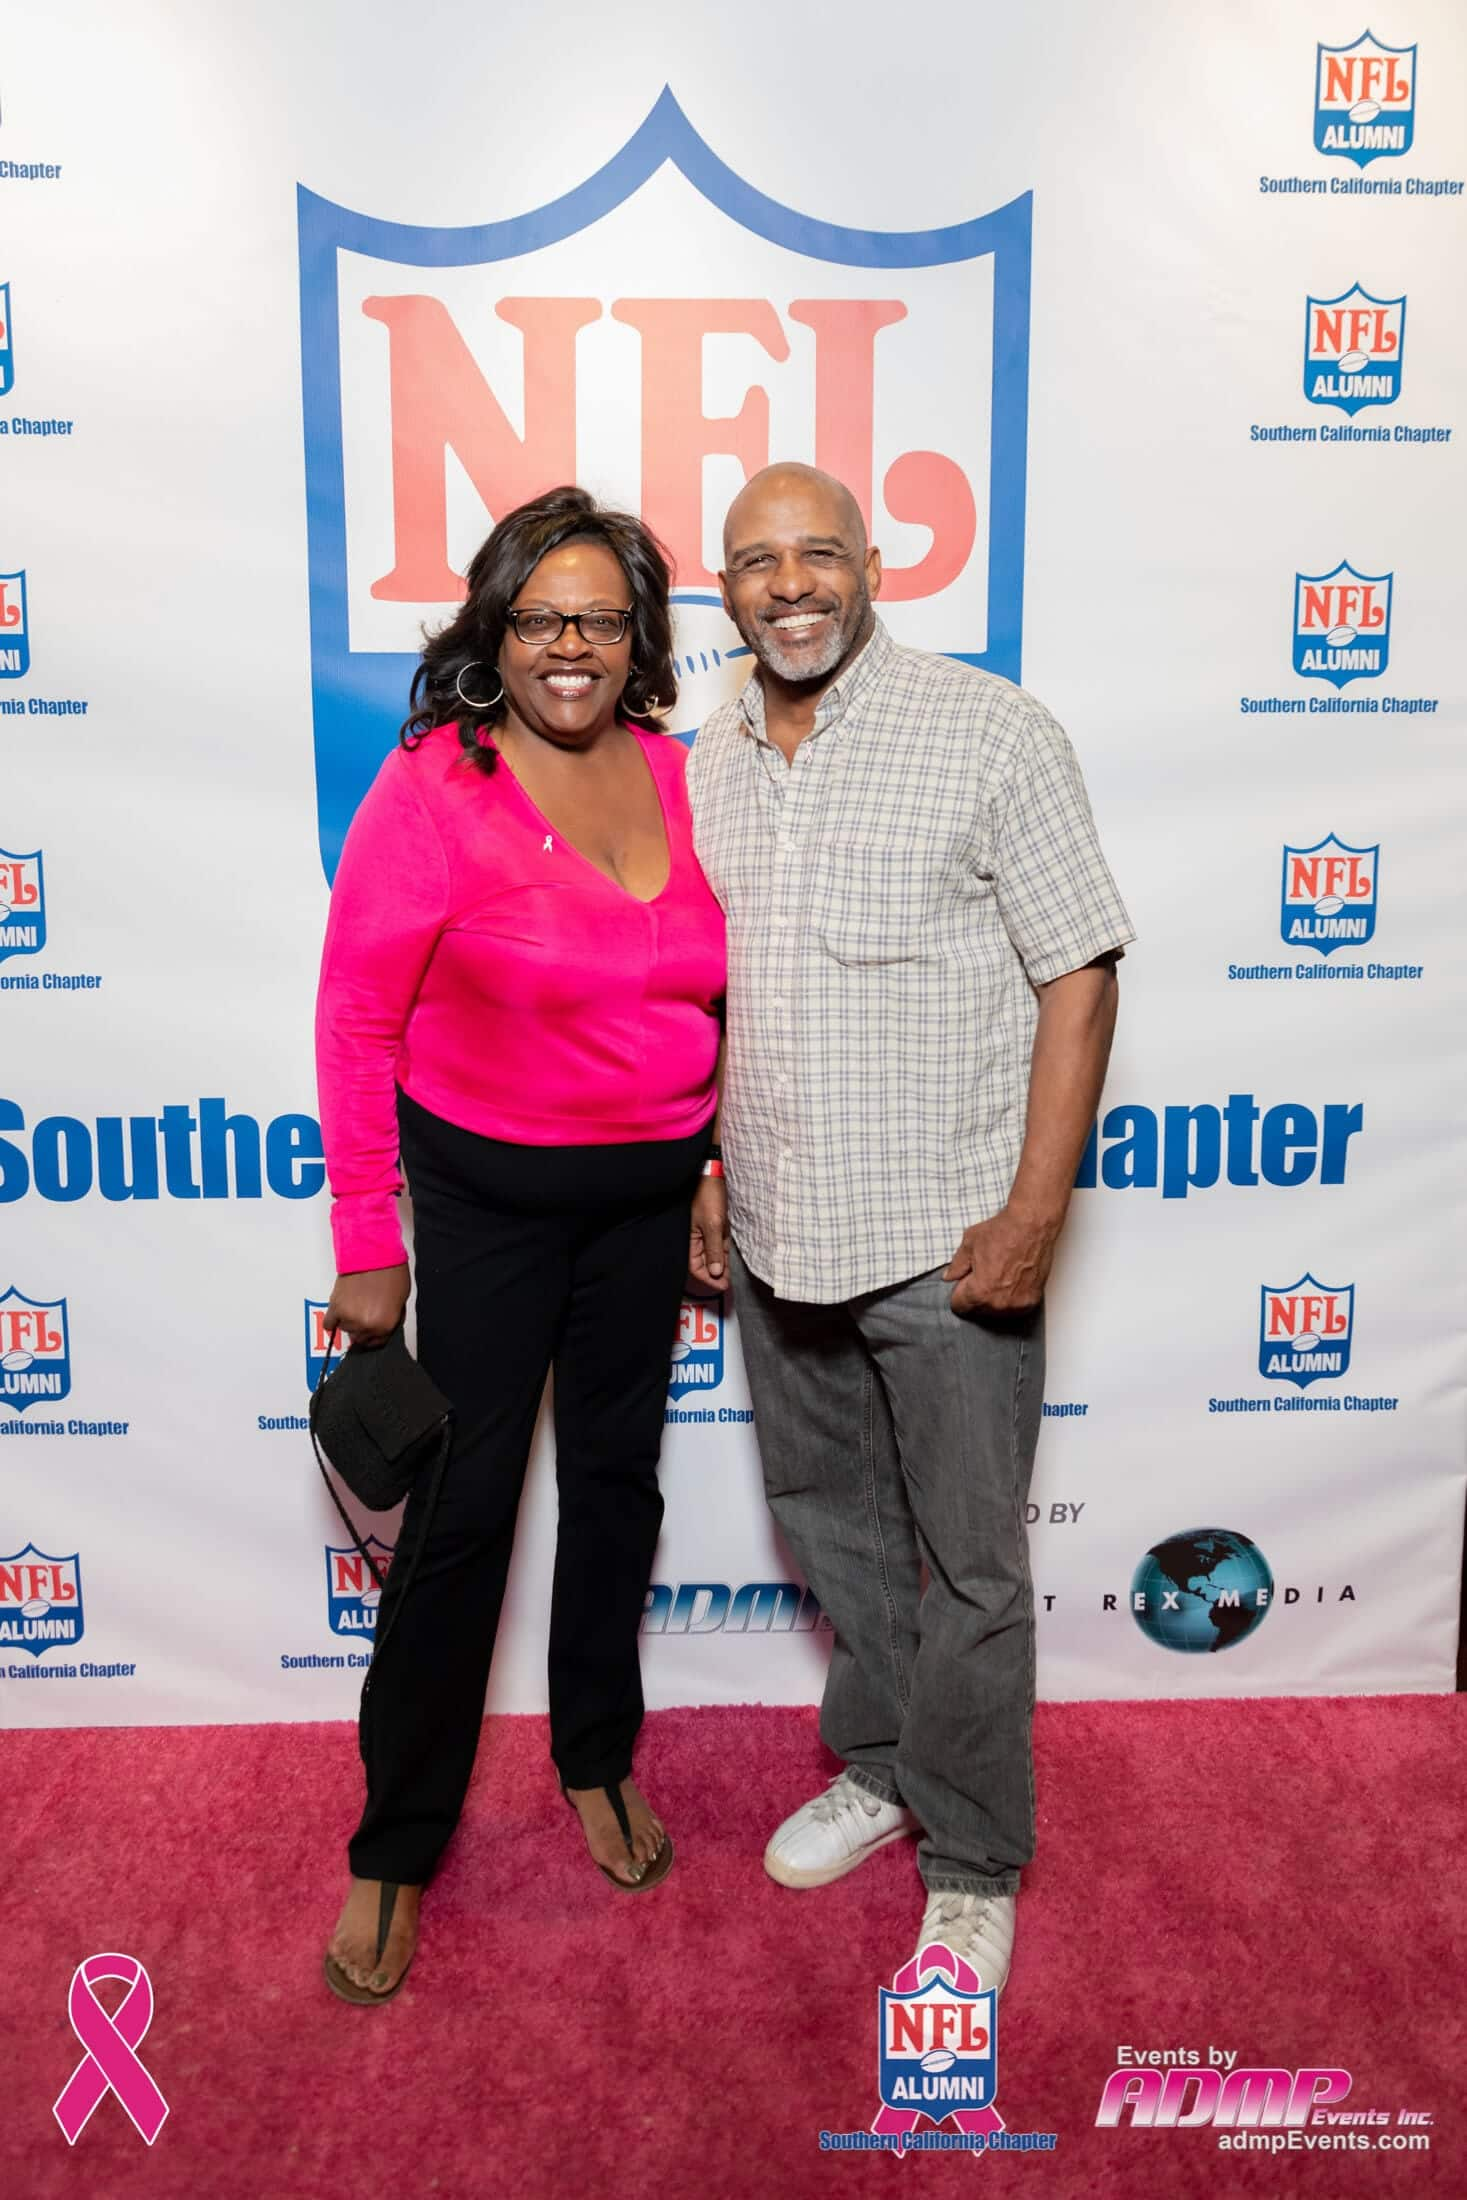 NFL Alumni SoCal Charity Event Series Breast Cancer Event 10-14-19-322